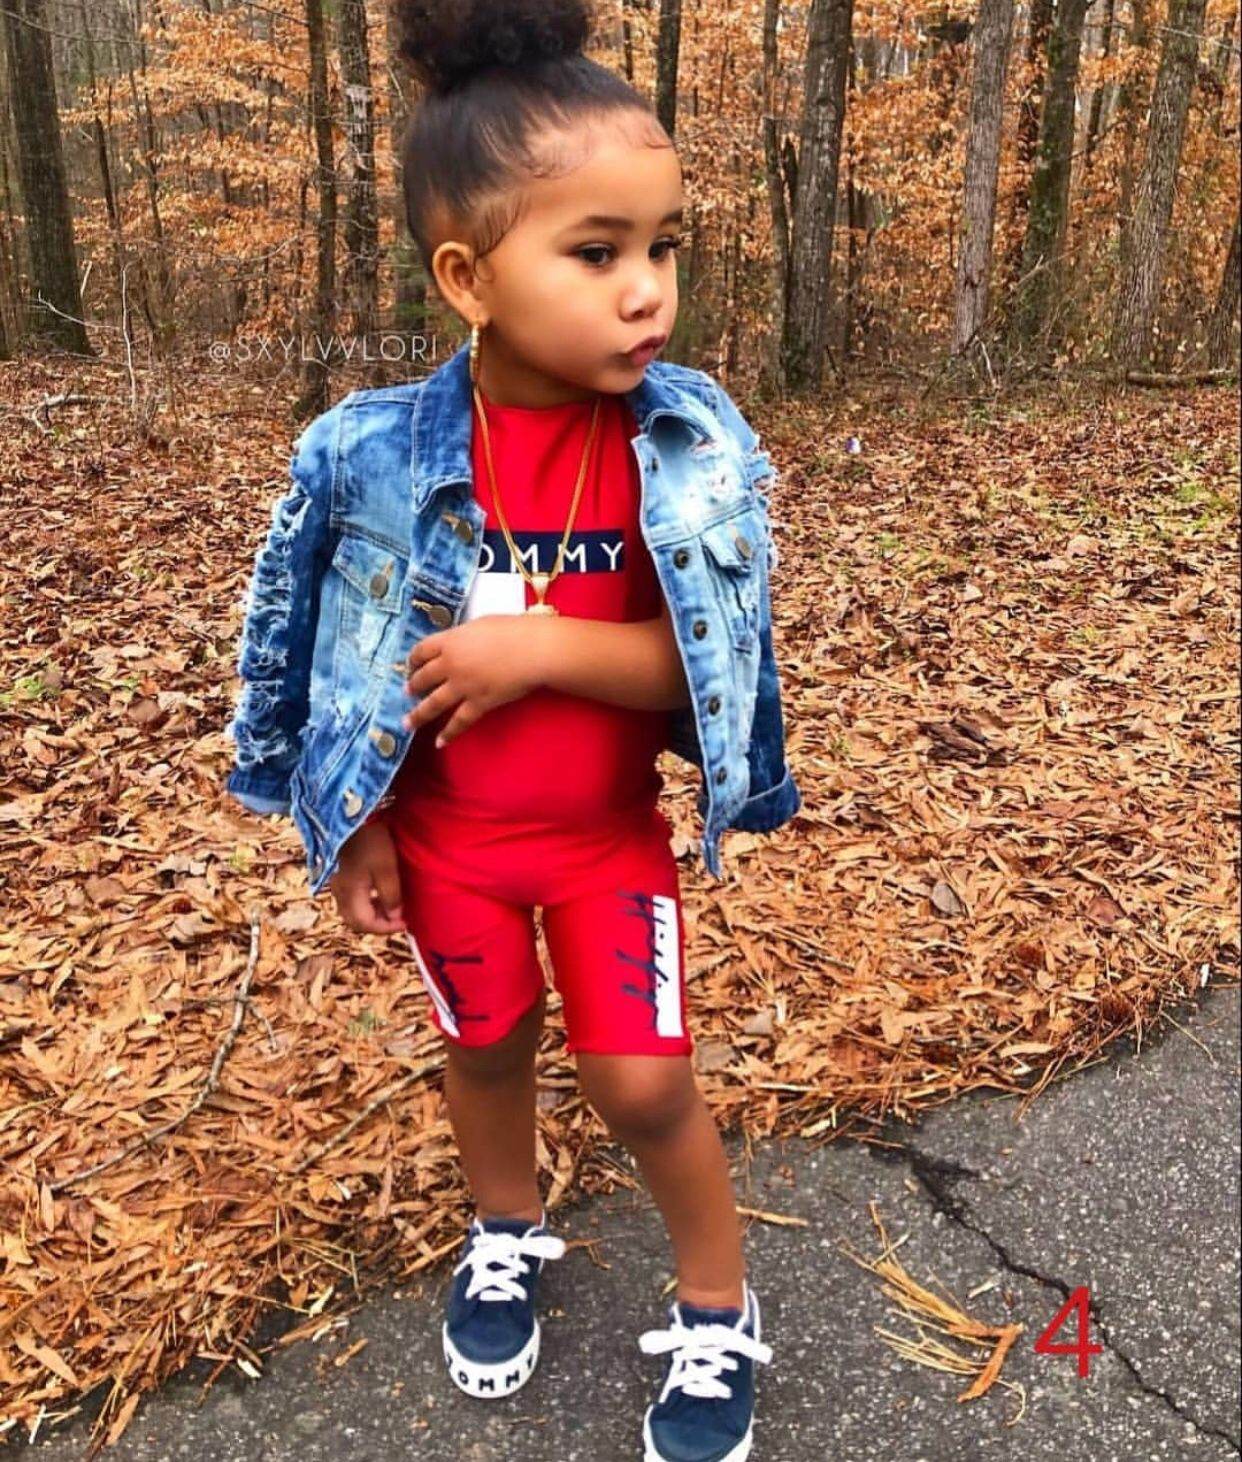 Pin By Lul Baby On K I D S With Images Cute Kids